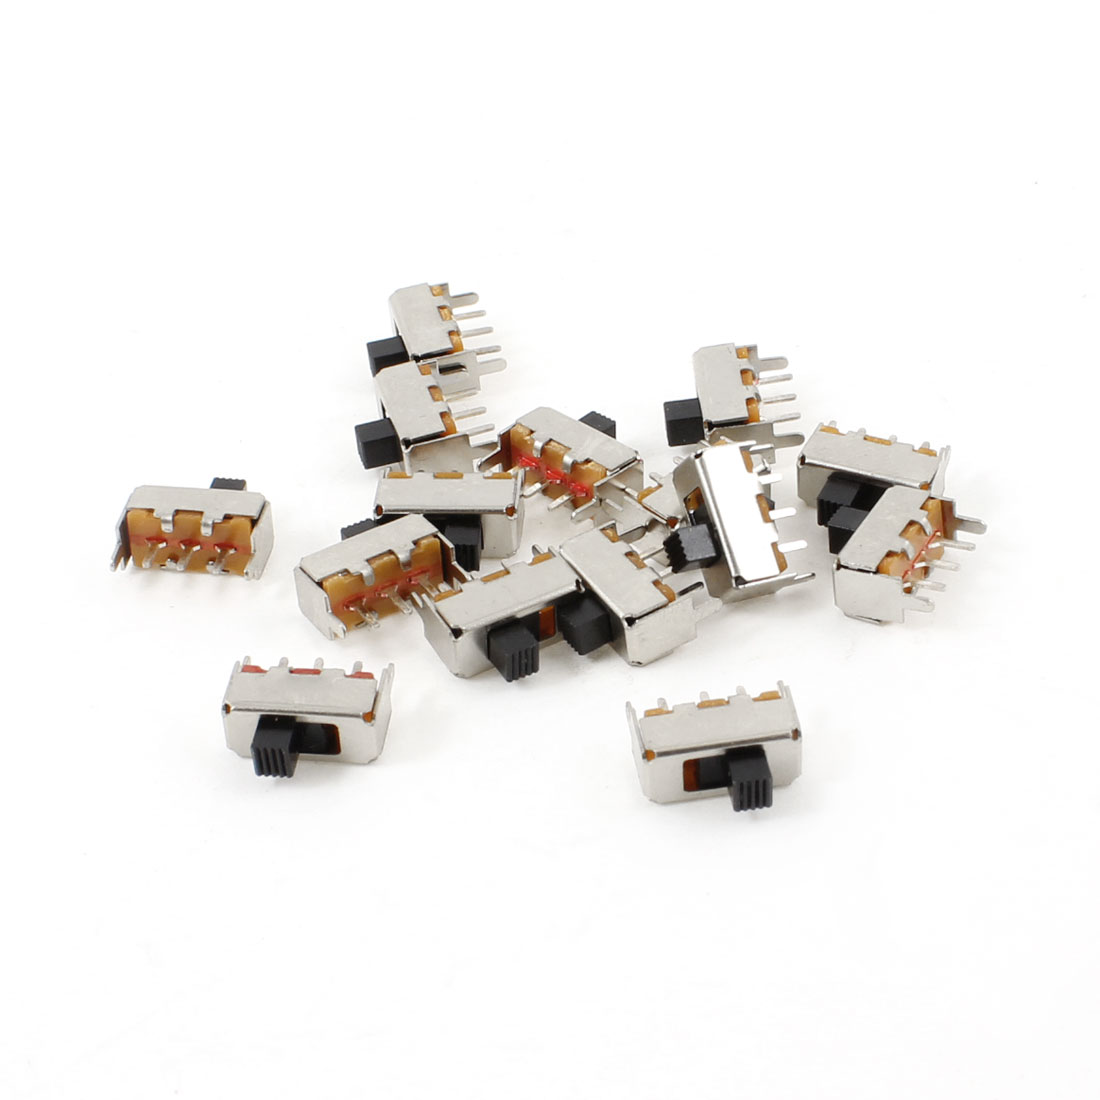 5A/110V 3A/220V AC Short Hinge Lever Actuator Miniature Micro Switch 15 Pcs